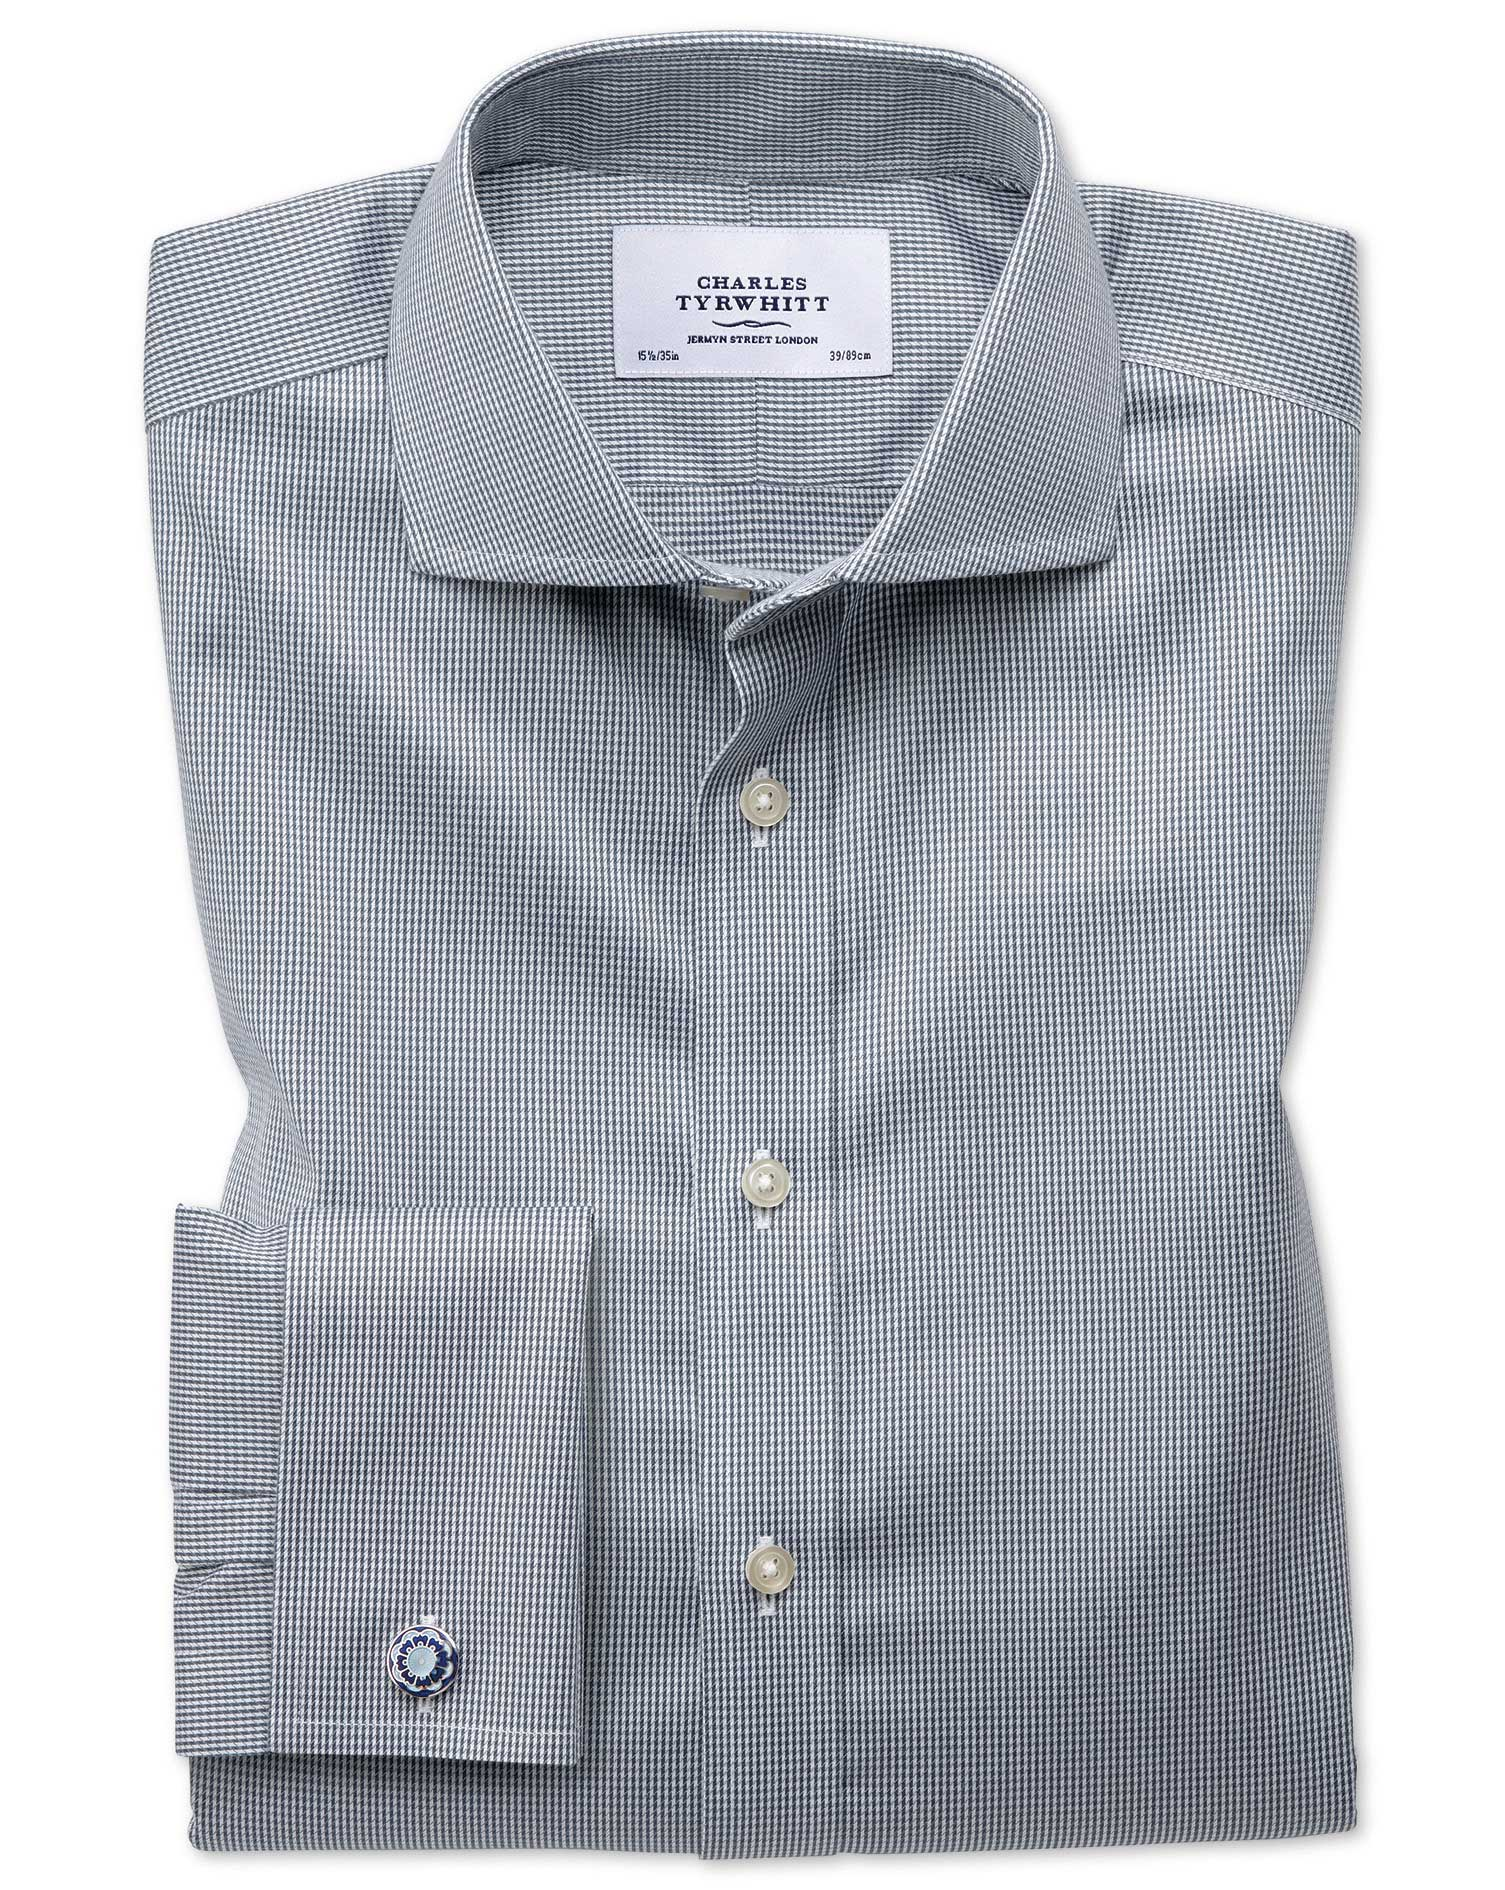 Extra Slim Fit Cutaway Non-Iron Puppytooth Dark Grey Cotton Formal Shirt Double Cuff Size 15/35 by Charles Tyrwhitt from Charles Tyrwhitt